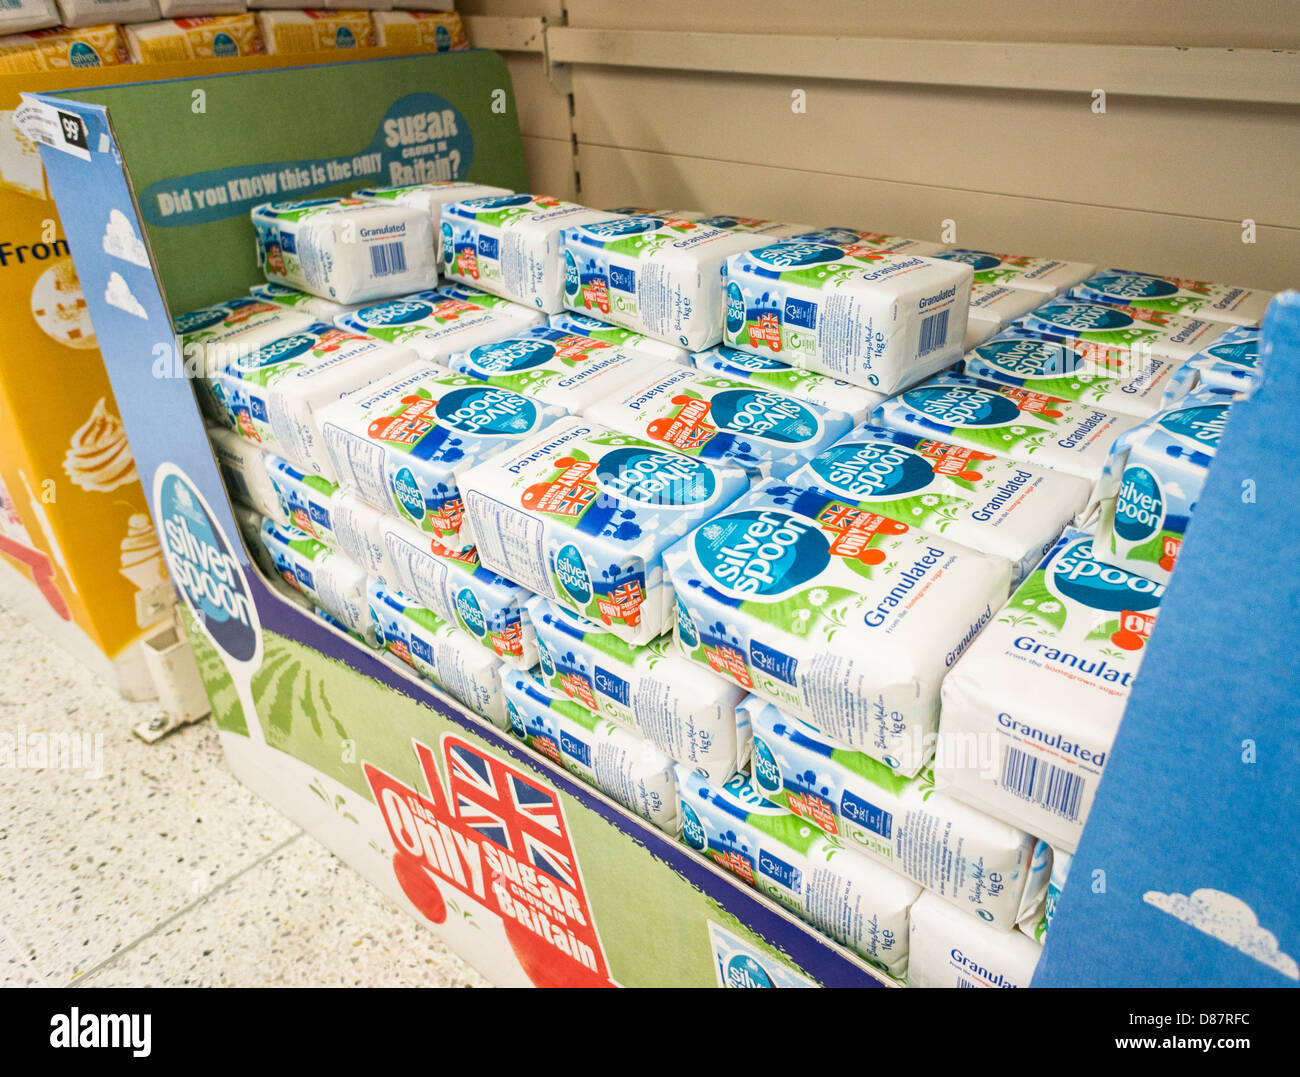 Silver Spoon white granulated sugar packets in a supermarket, UK - Stock Image